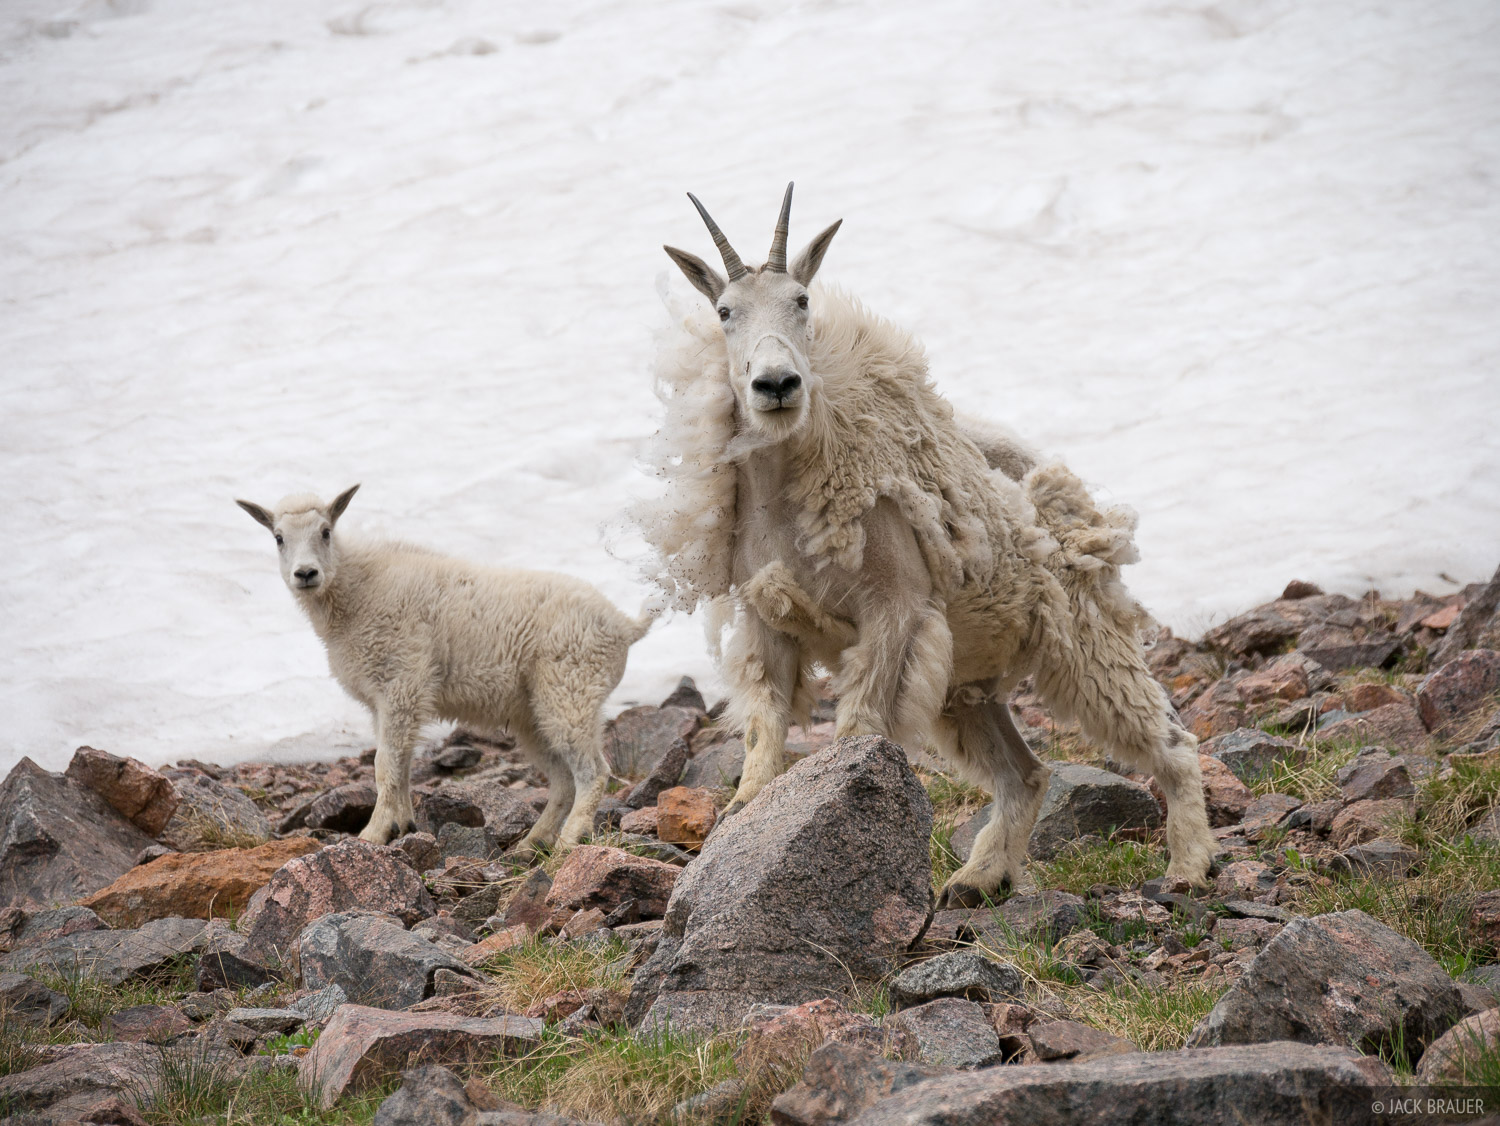 Colorado, Gore Range, mountain goat, Eagles Nest Wilderness, Kneeknocker Pass, photo